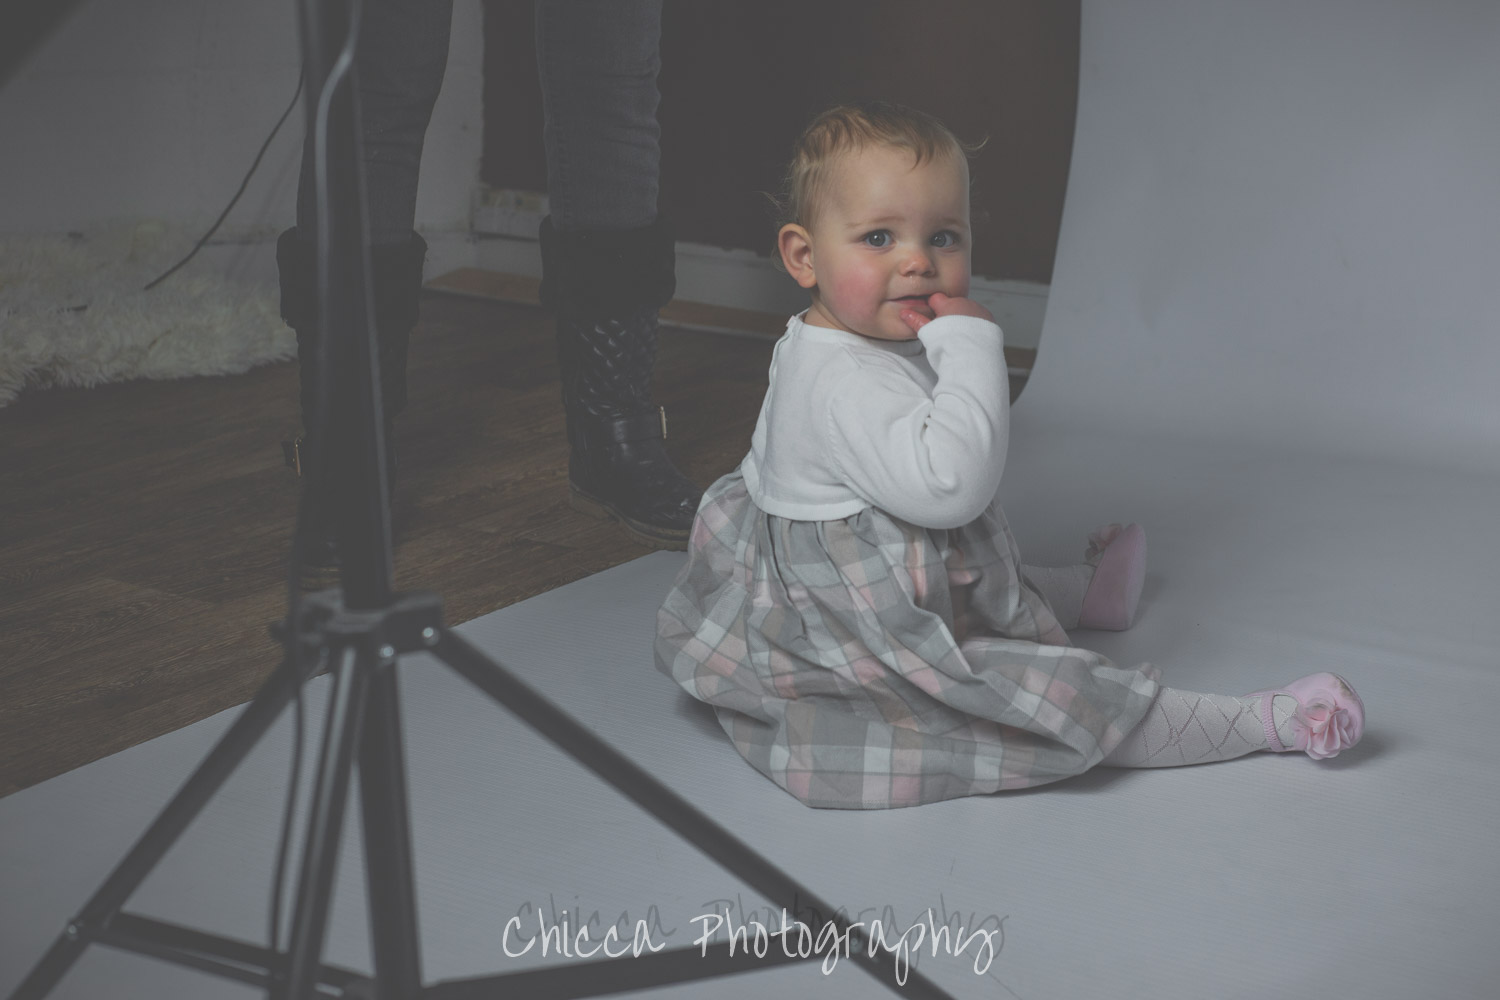 family-baby-photographer-portraits-in-keighley-bradford-skipton-halifax-1.jpg